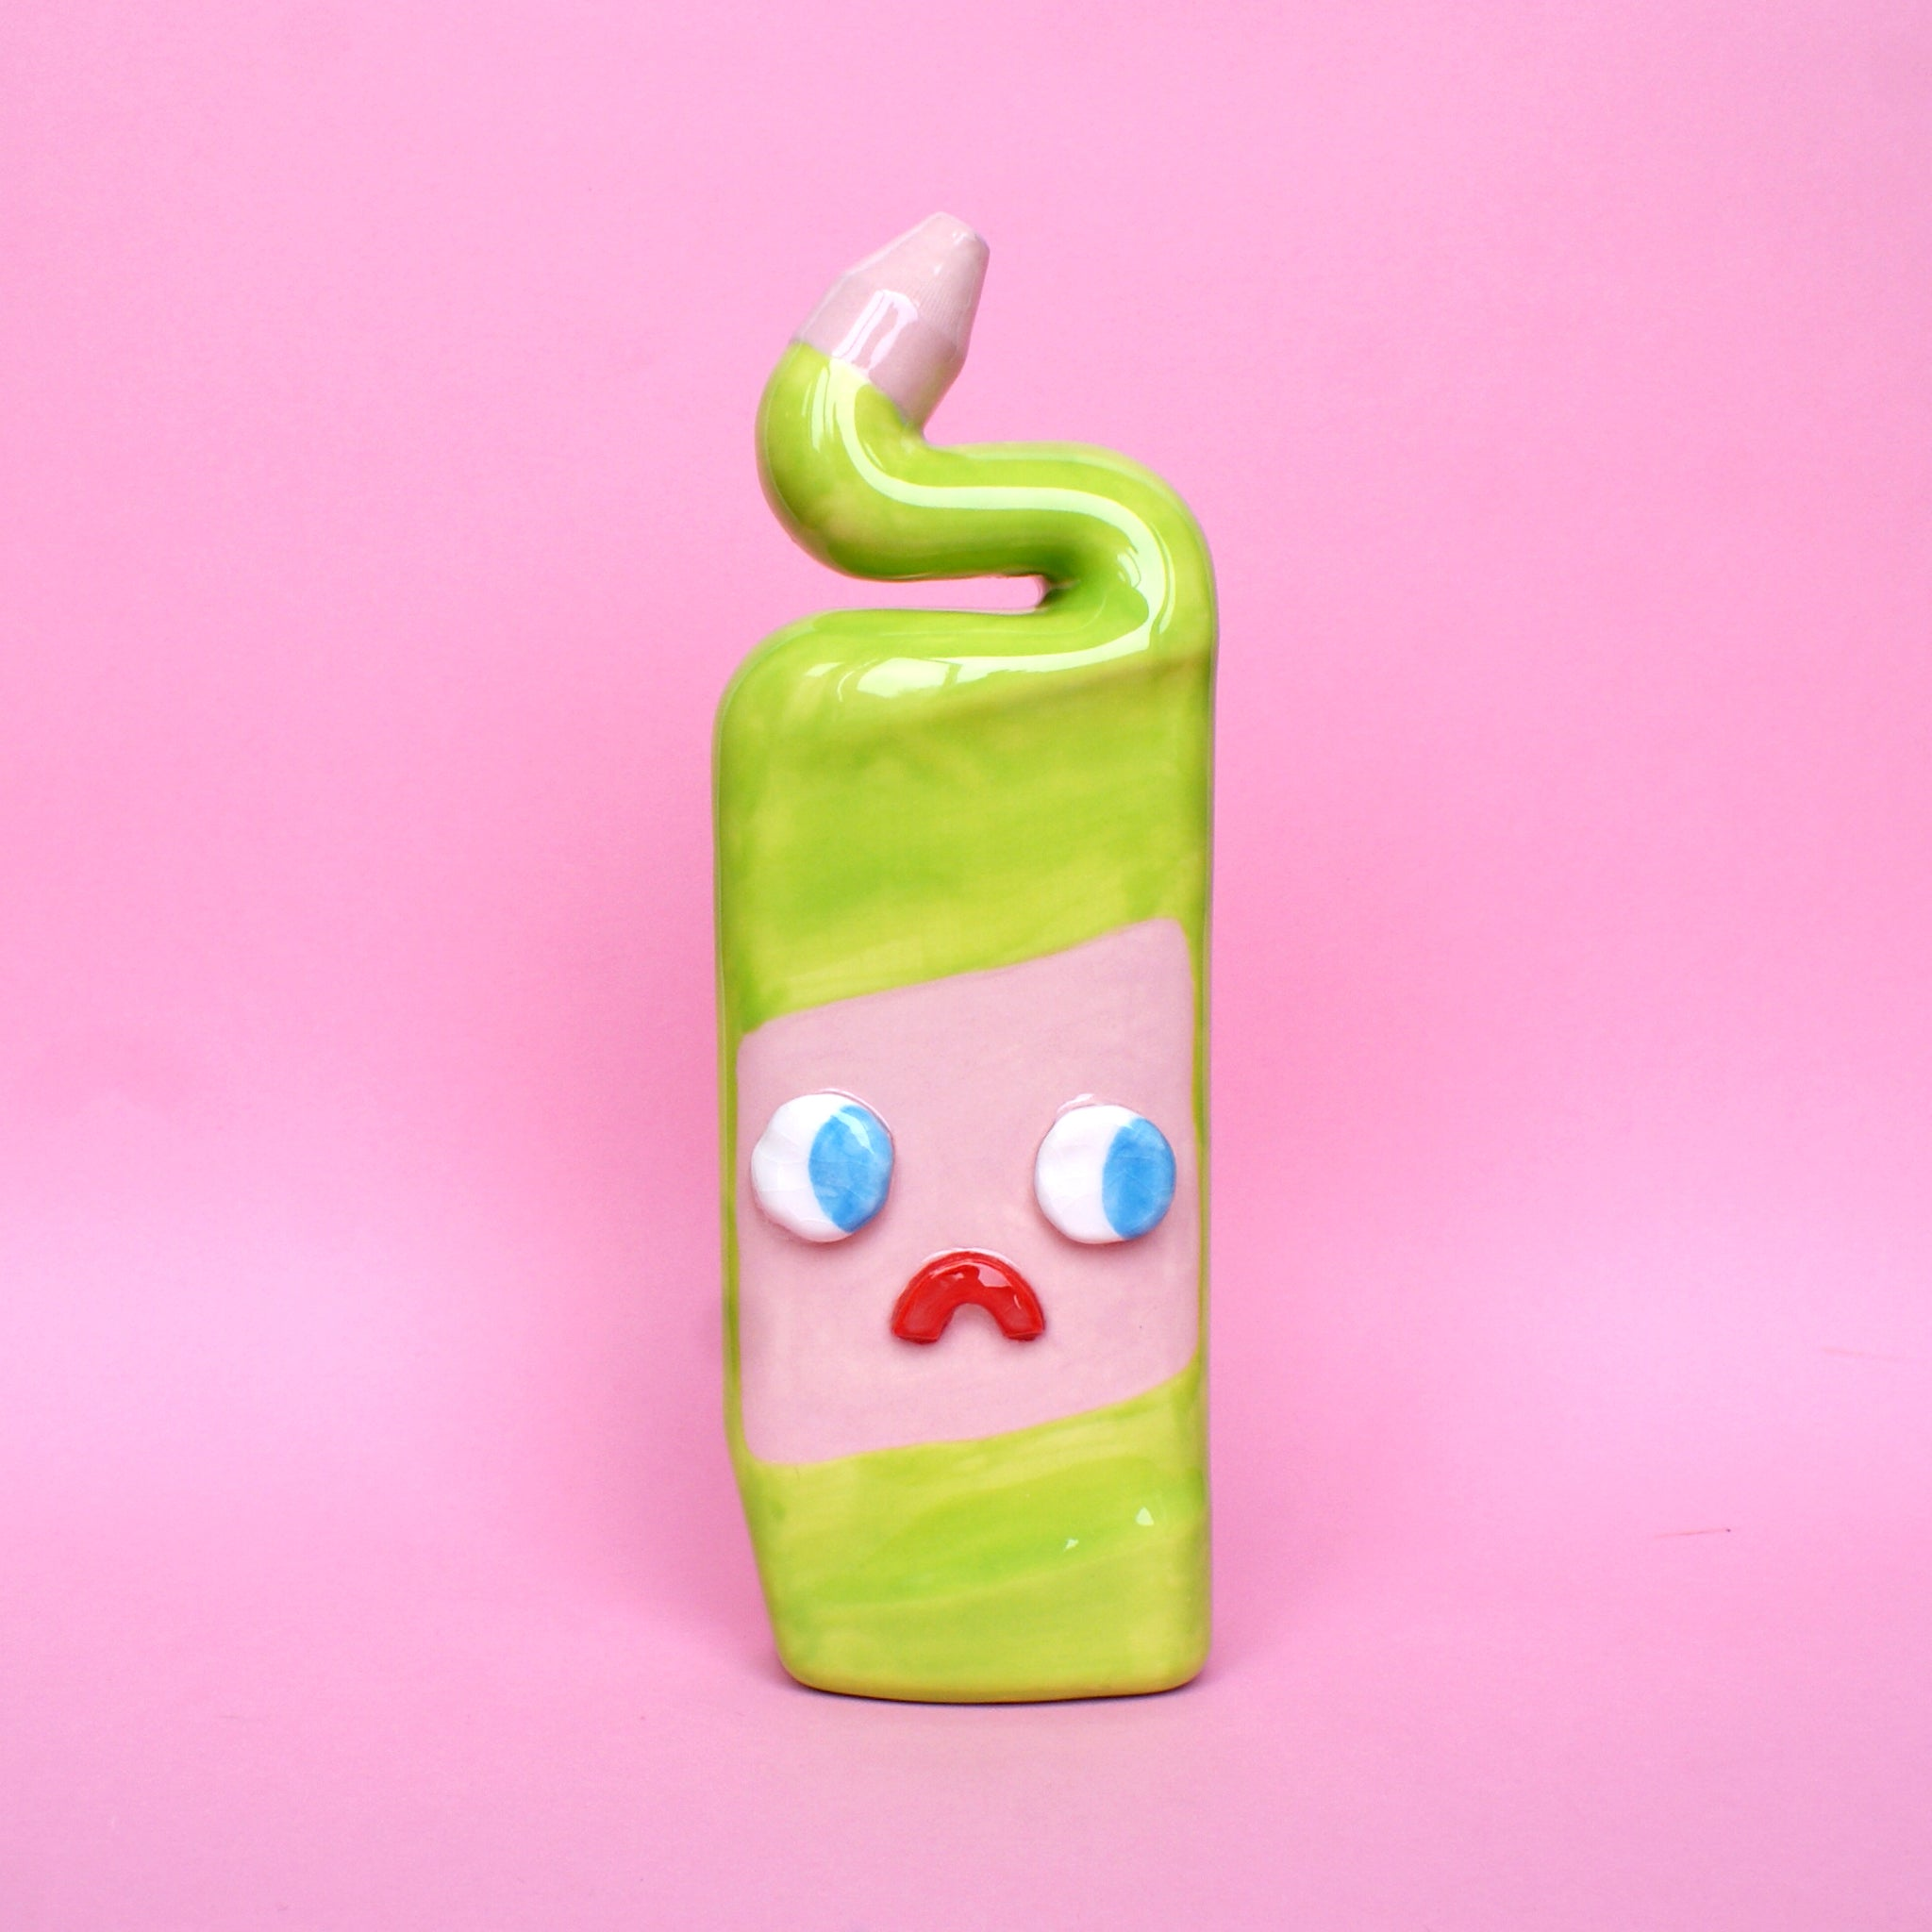 Green and Pink Ceramic Toilet Cleaner Bottle with Eyes